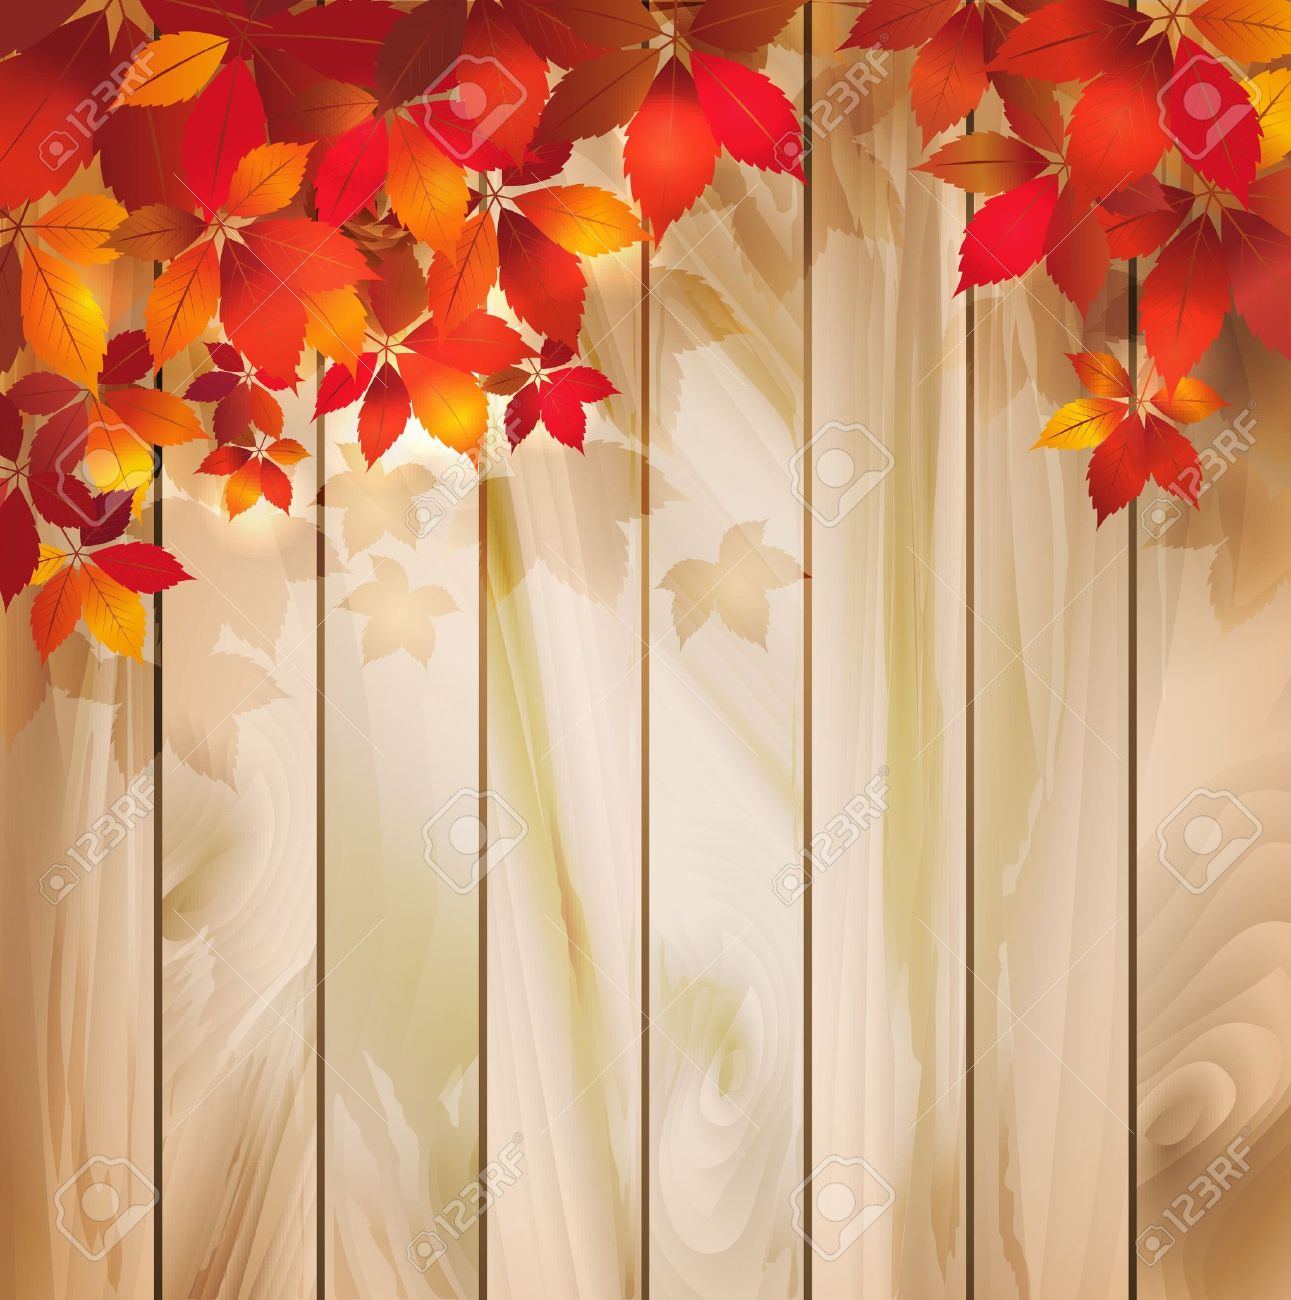 hight resolution of autumn background with leaves on a wood texture